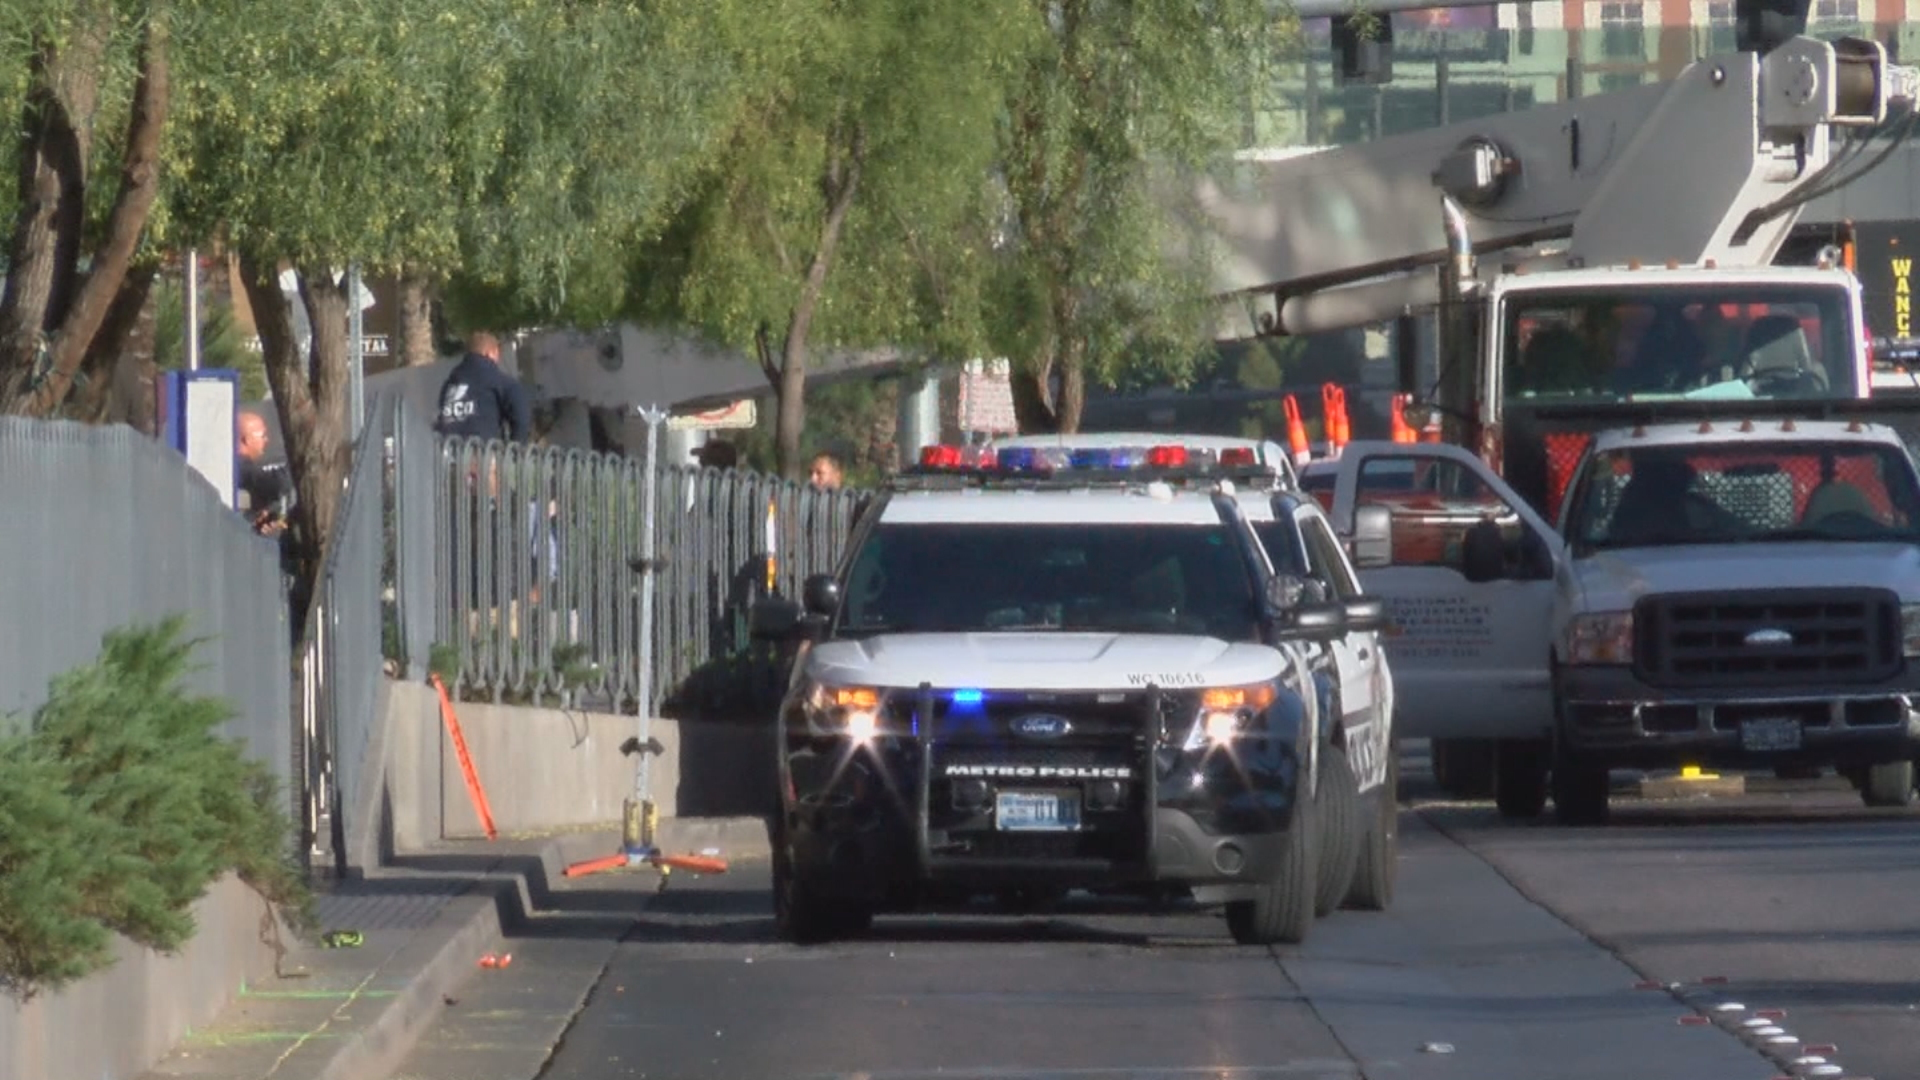 Police investigate a shooting Tuesday, November 14, 2017, on the 3700 block of Las Vegas Blvd. South in Las Vegas. (KSNV)